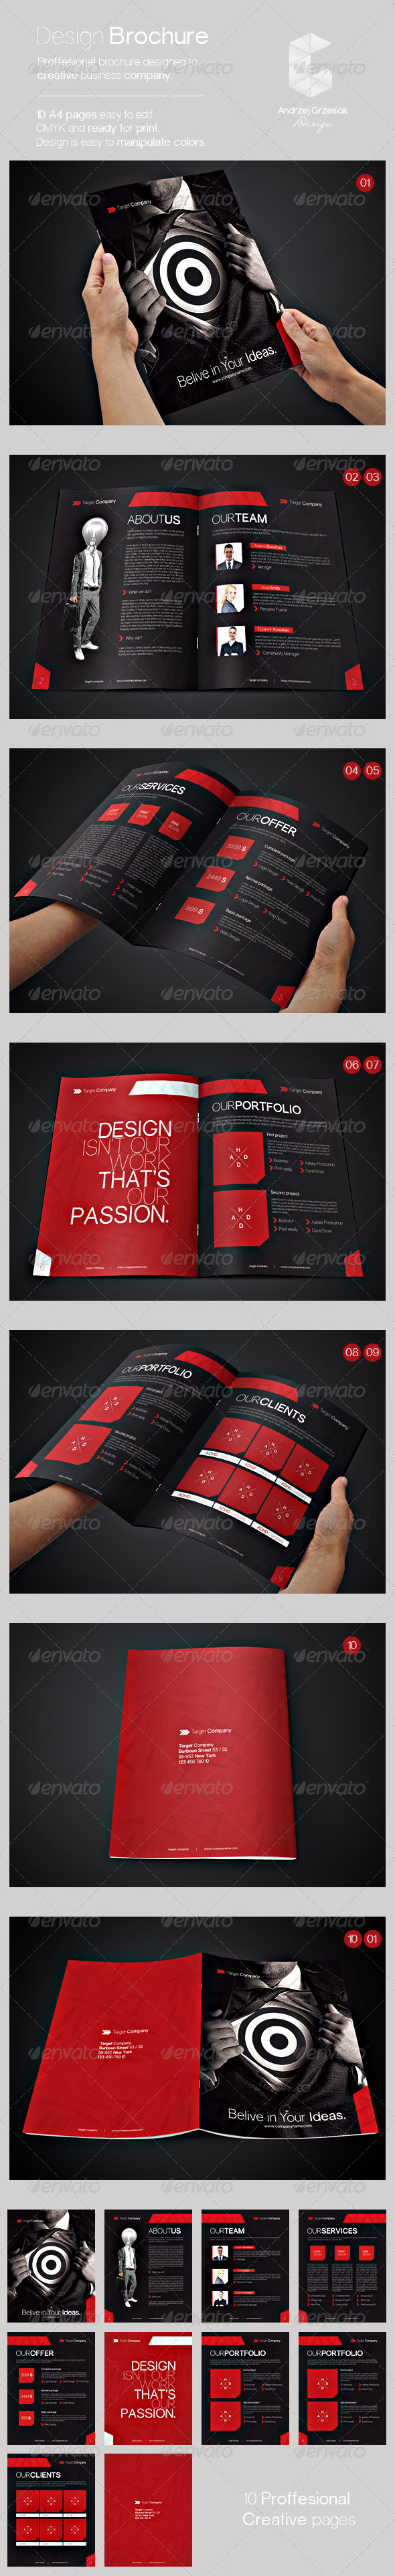 GraphicRiver Proffesional Brochure Template 5472243